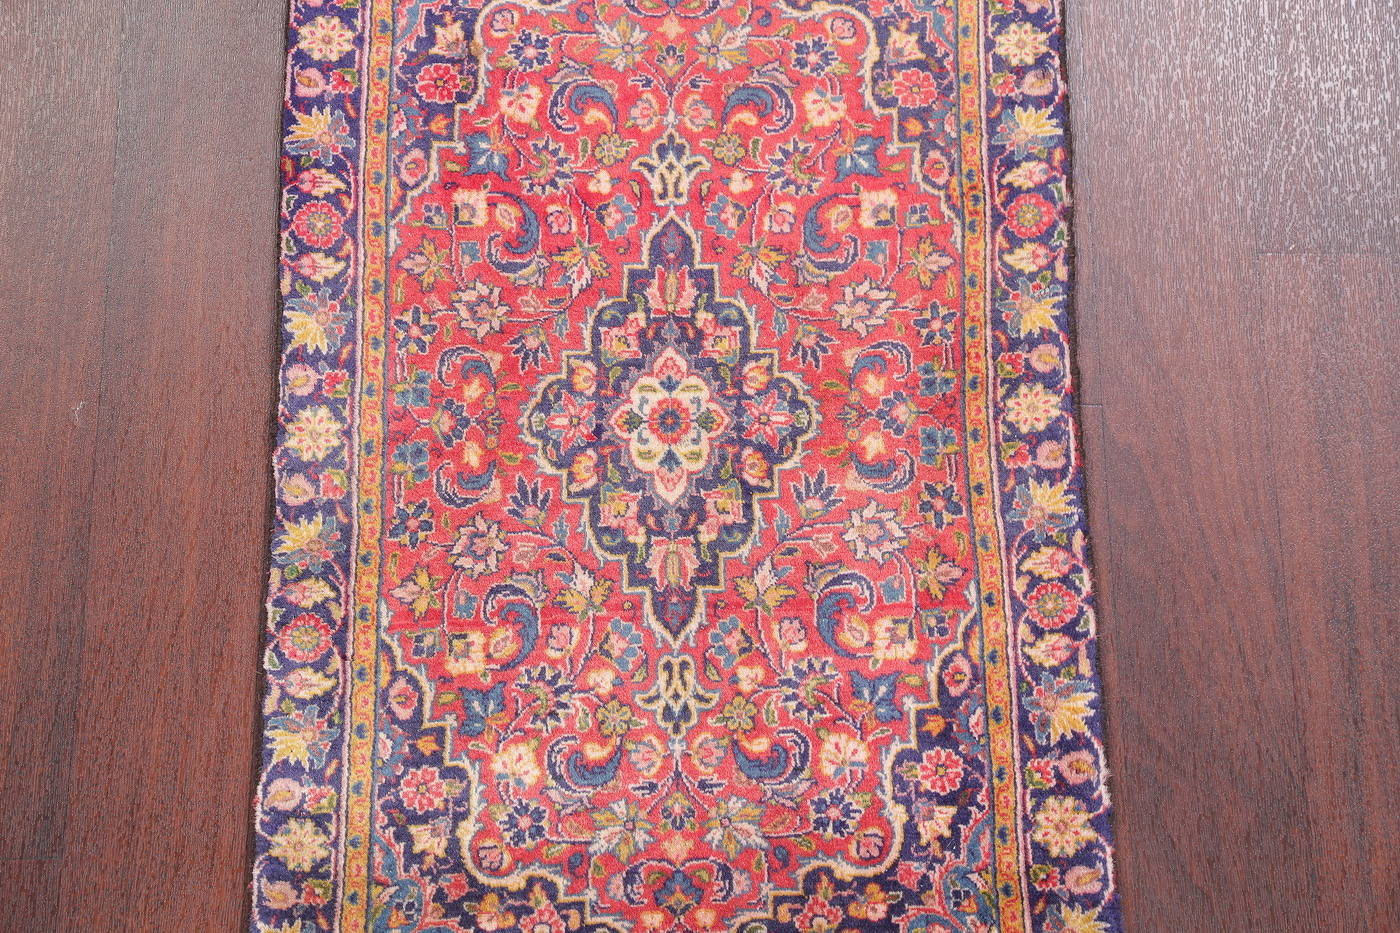 Hand-Knotted Red Traditional Floral Kashan Persian Wool Rug 2x4